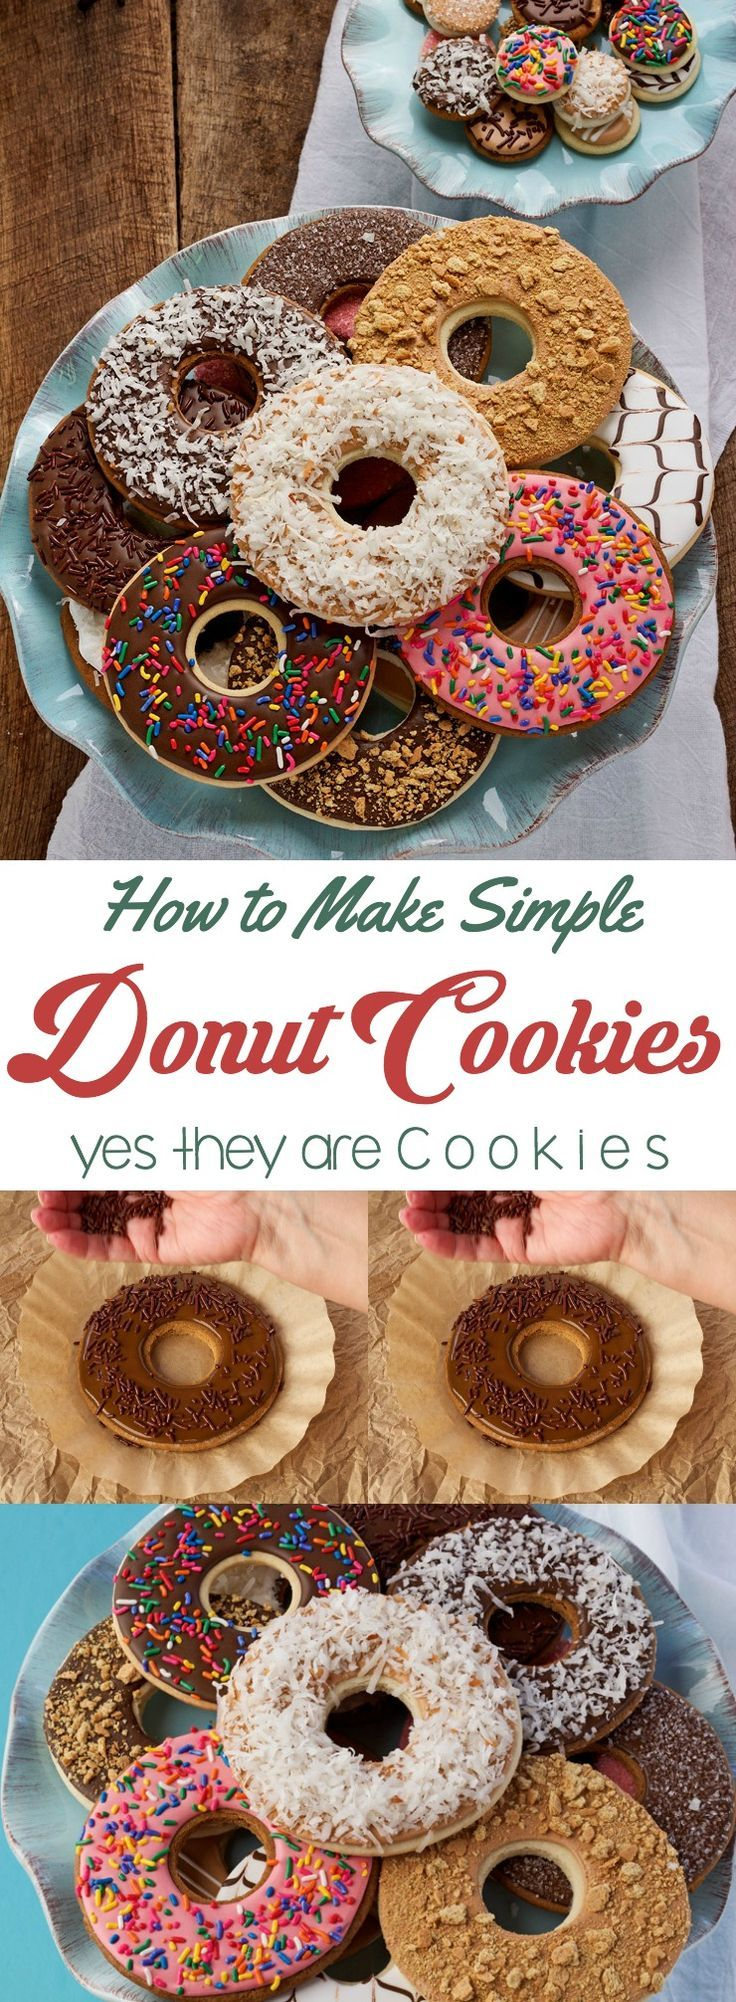 How to Make Simple Donut Cookies that Look Like they are Real Donuts   The Bearfoot Baker